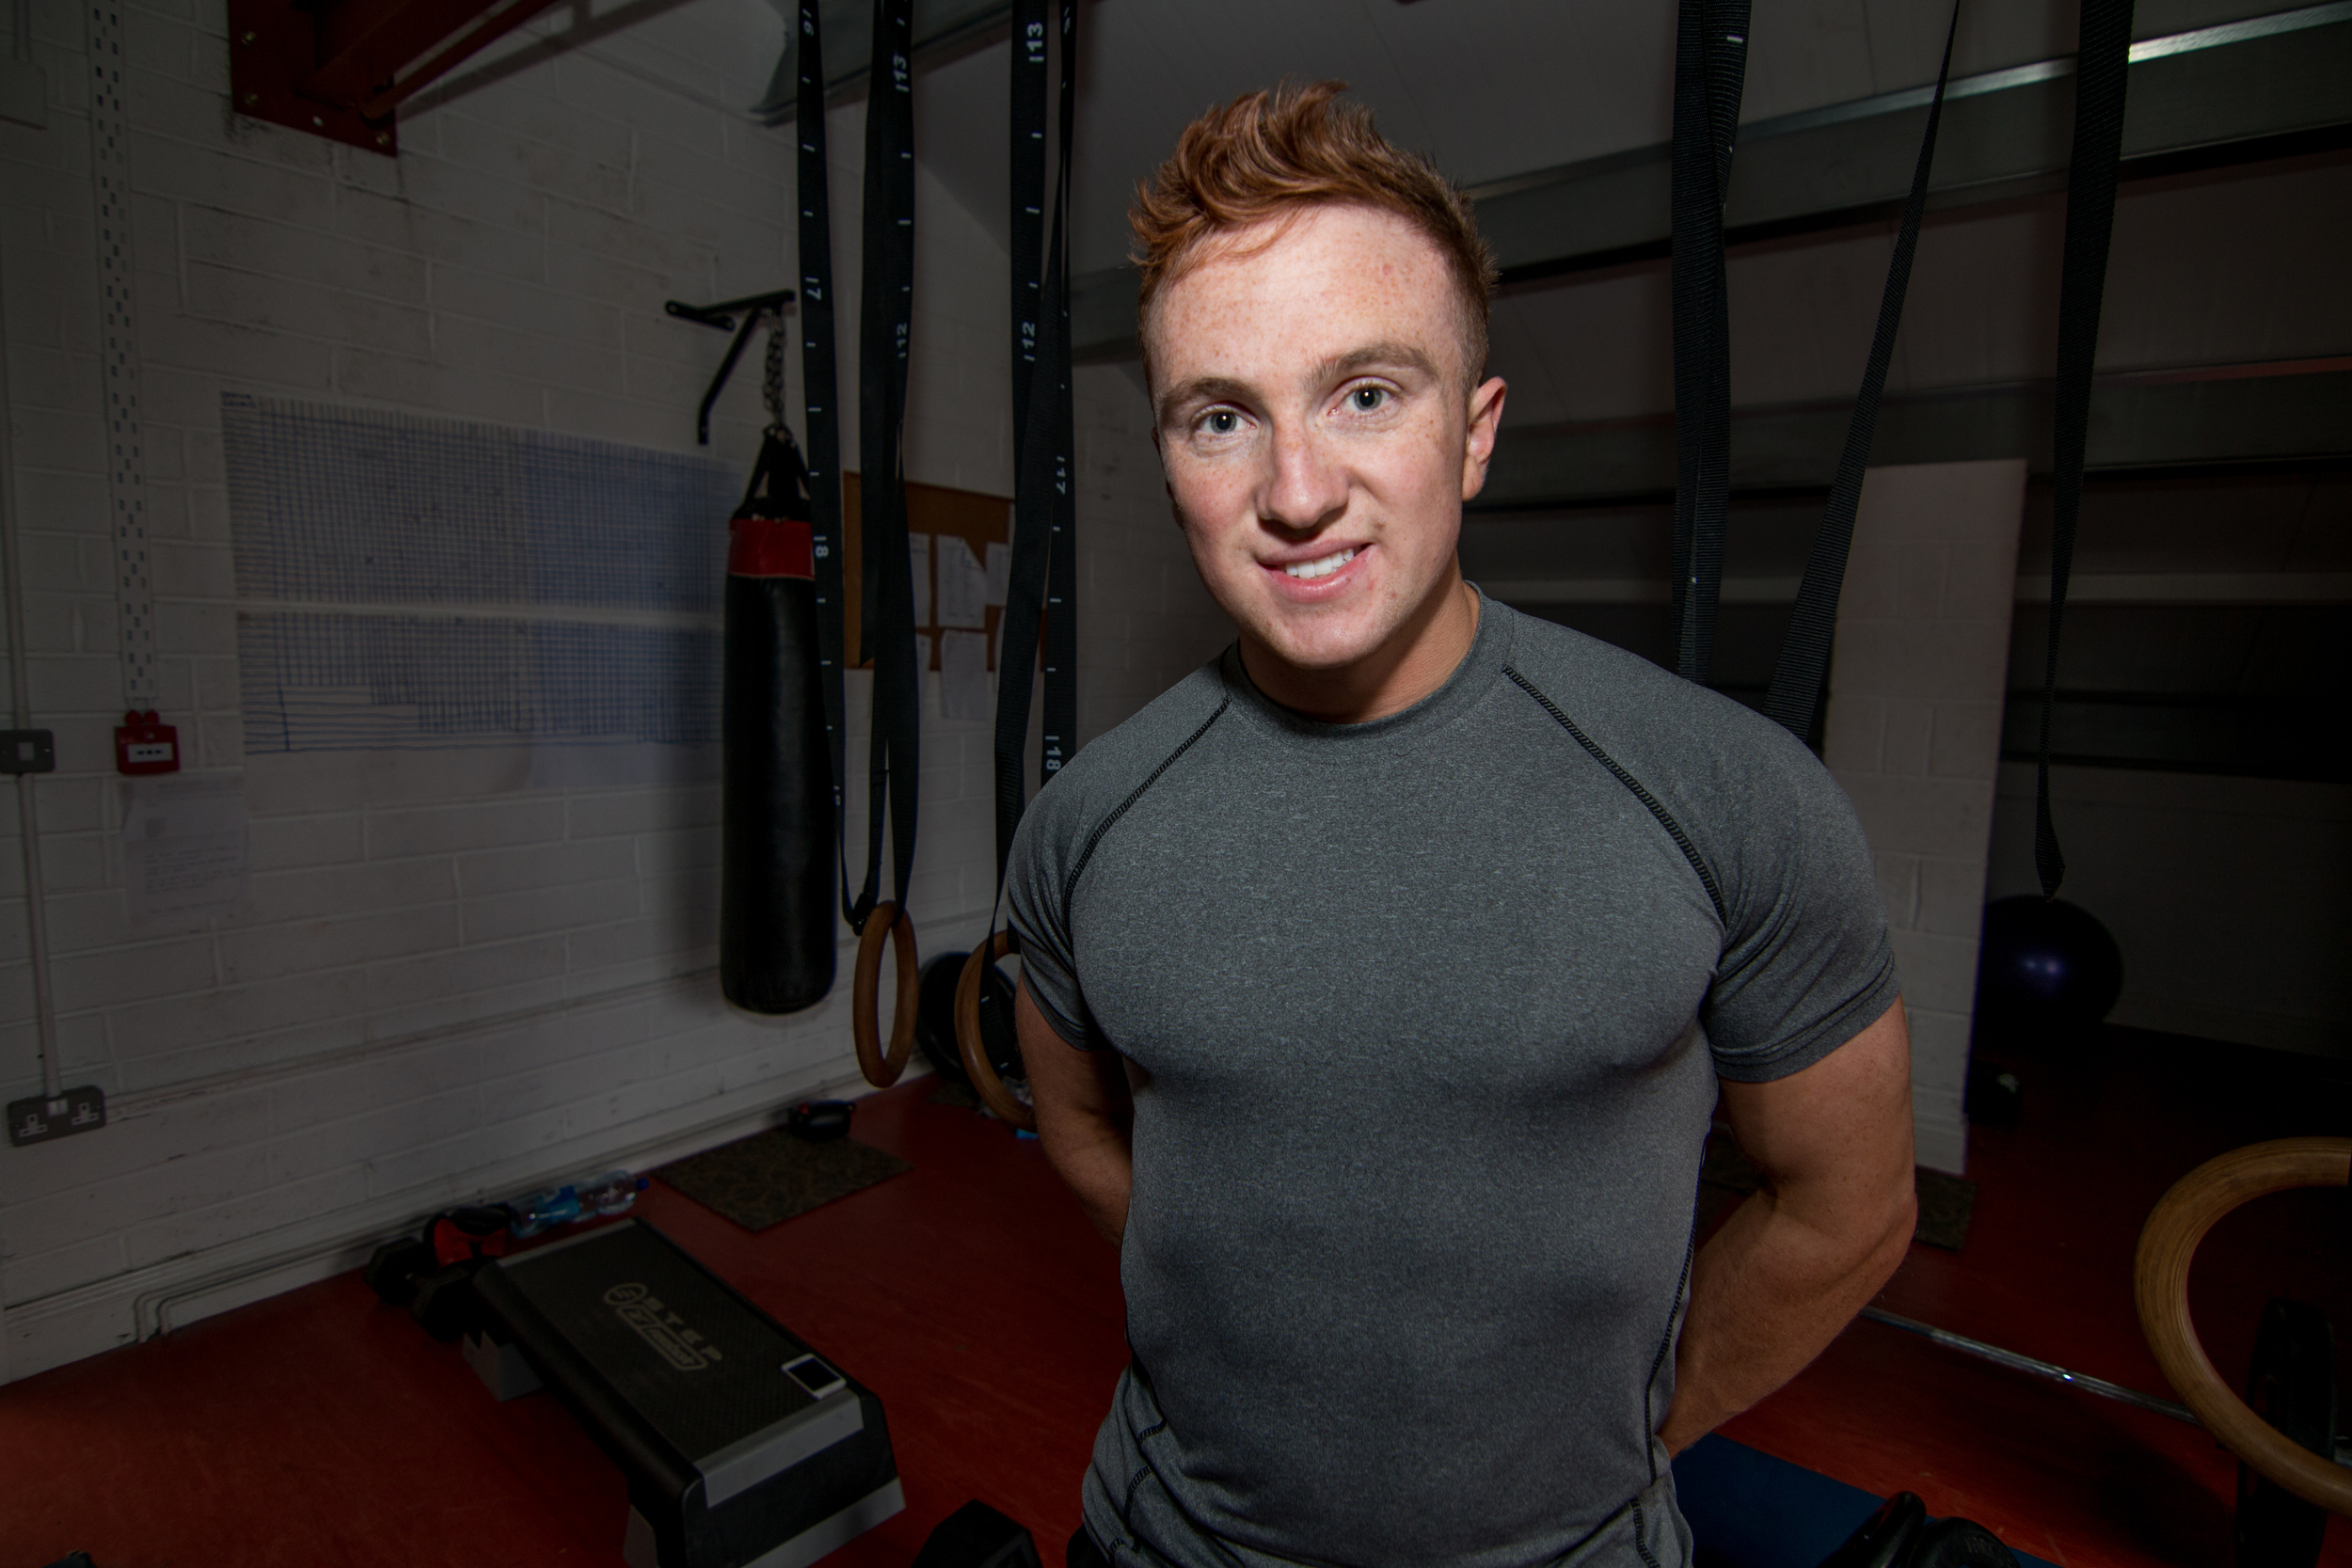 Jason is a Qualified Personal Trainer & Nutrition Advisor. His focus is on helping people lose weight, tone up & generally feel better about themselves.Jason welcomes all levels and his clients are his main priority,making sure he has everything in place for them.  Jason represented Connacht in Rugby at underage level. He won young gun of the season in the Emerald Rugby magazine in 2012 and was offered a sports scholarship to Trinity College. At present Jason qualifications in Personal Training, Spinning, Functional Training and Nutrition.  fitness / mens / ladies bootcamps / online plans / weight loss / fat loss / nutrition / meal plans / motivation / support / galway city / galway / ireland / renmore